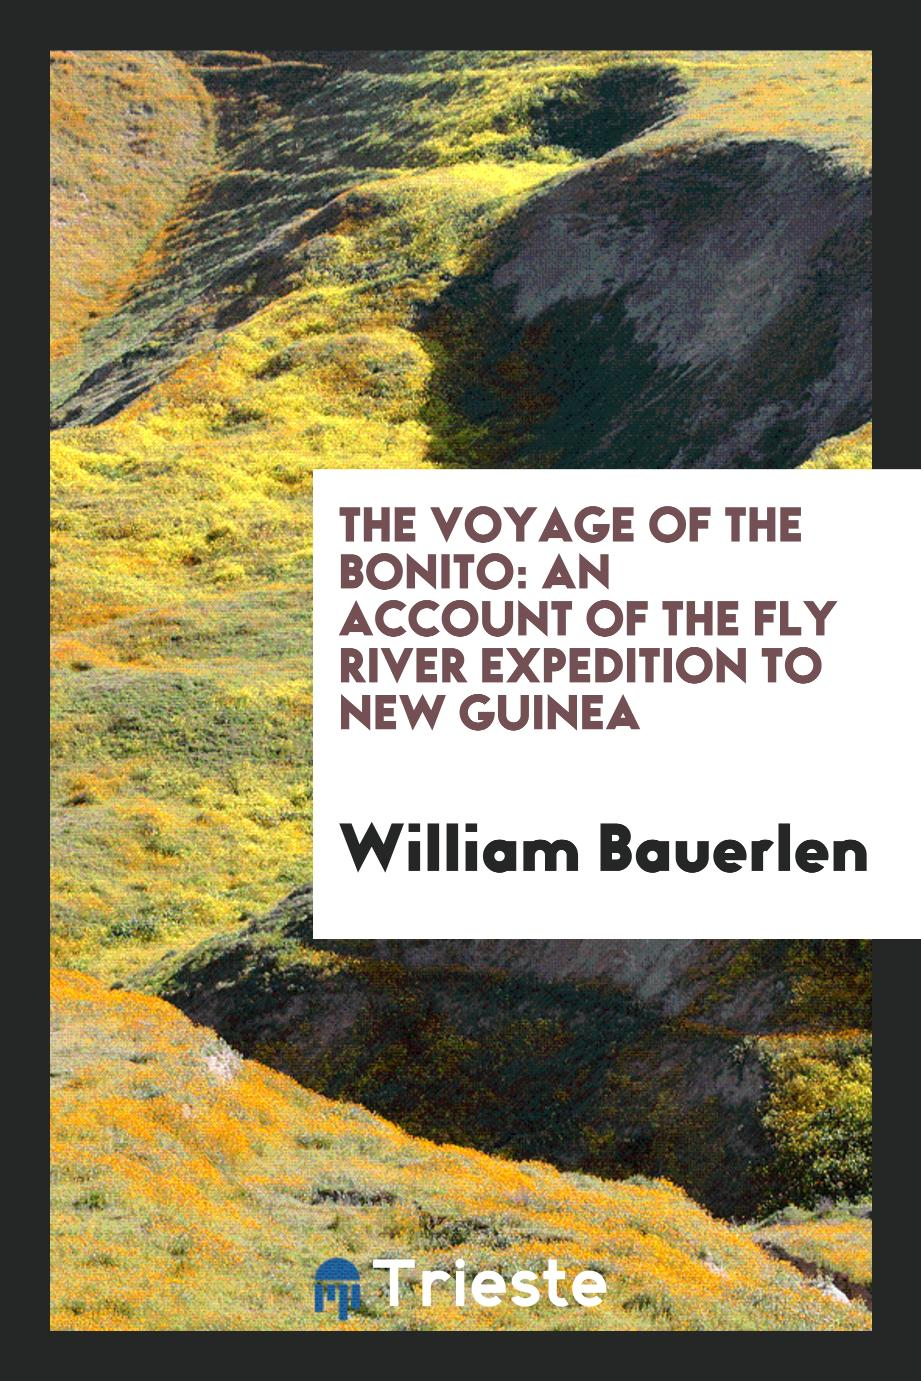 The voyage of the Bonito: an account of the Fly River Expedition to New Guinea